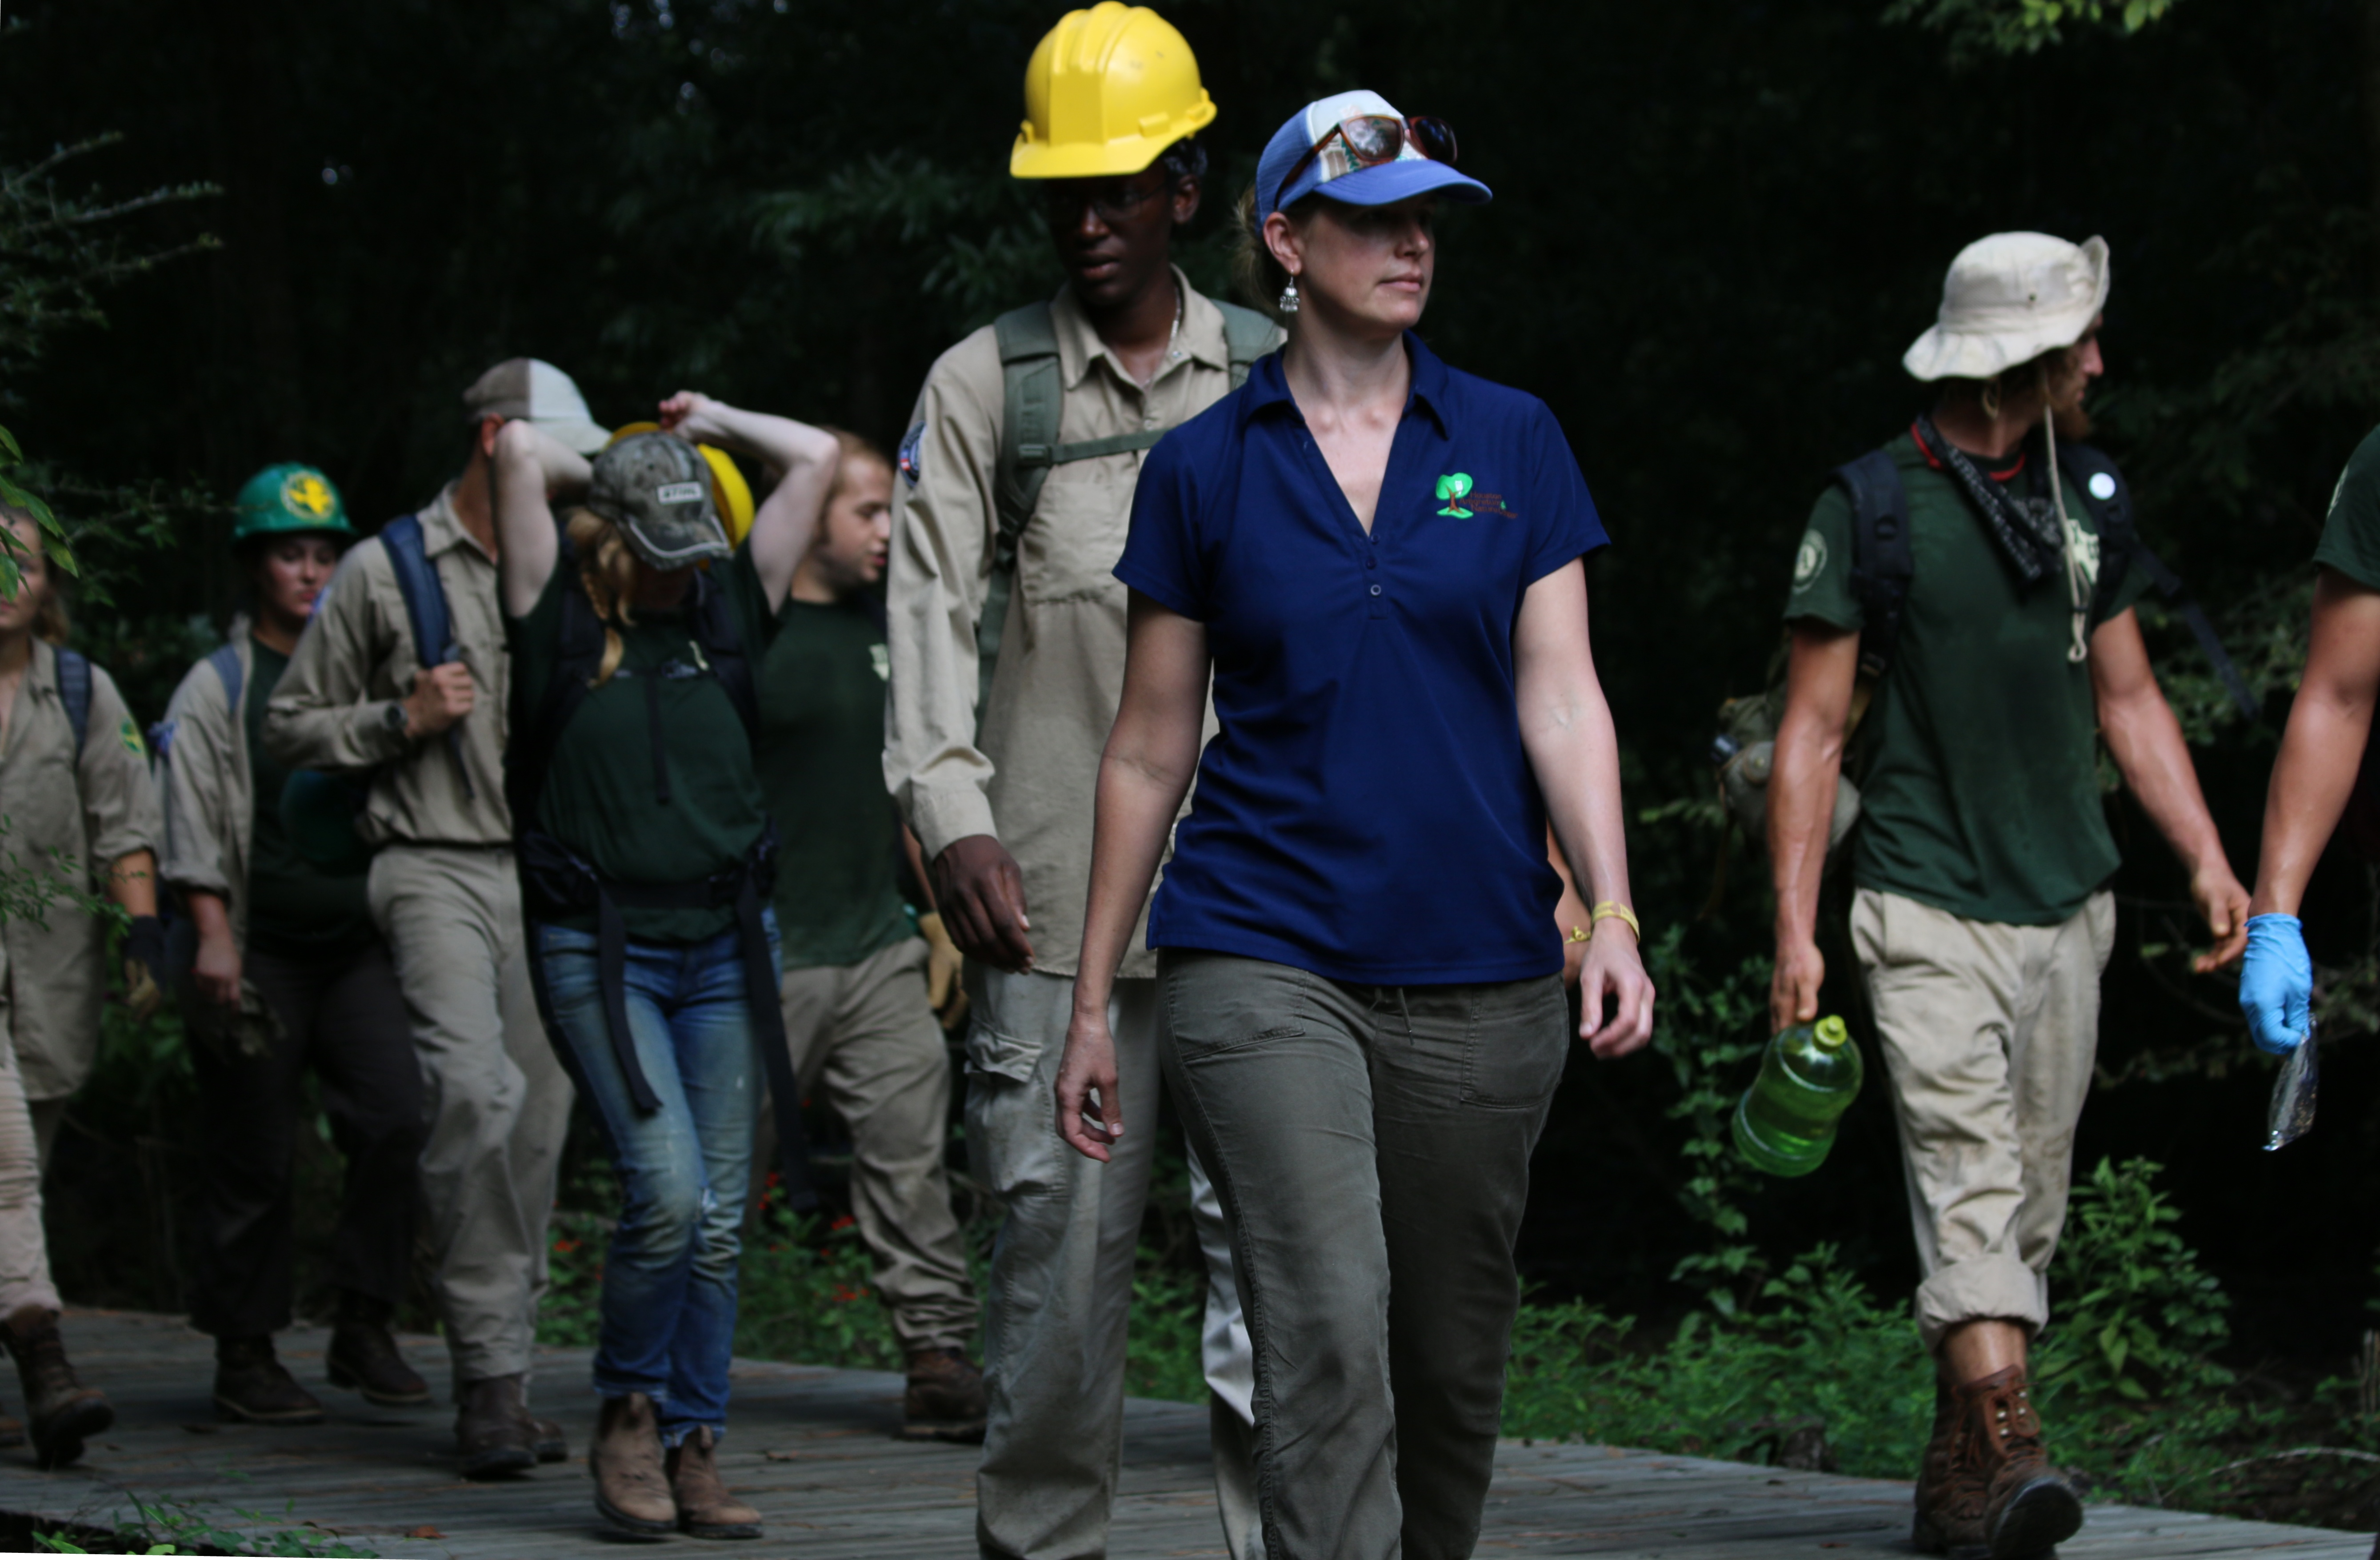 Houston Arboretum's Emily Manderson leads members of the Texas Conservation Corps to work site